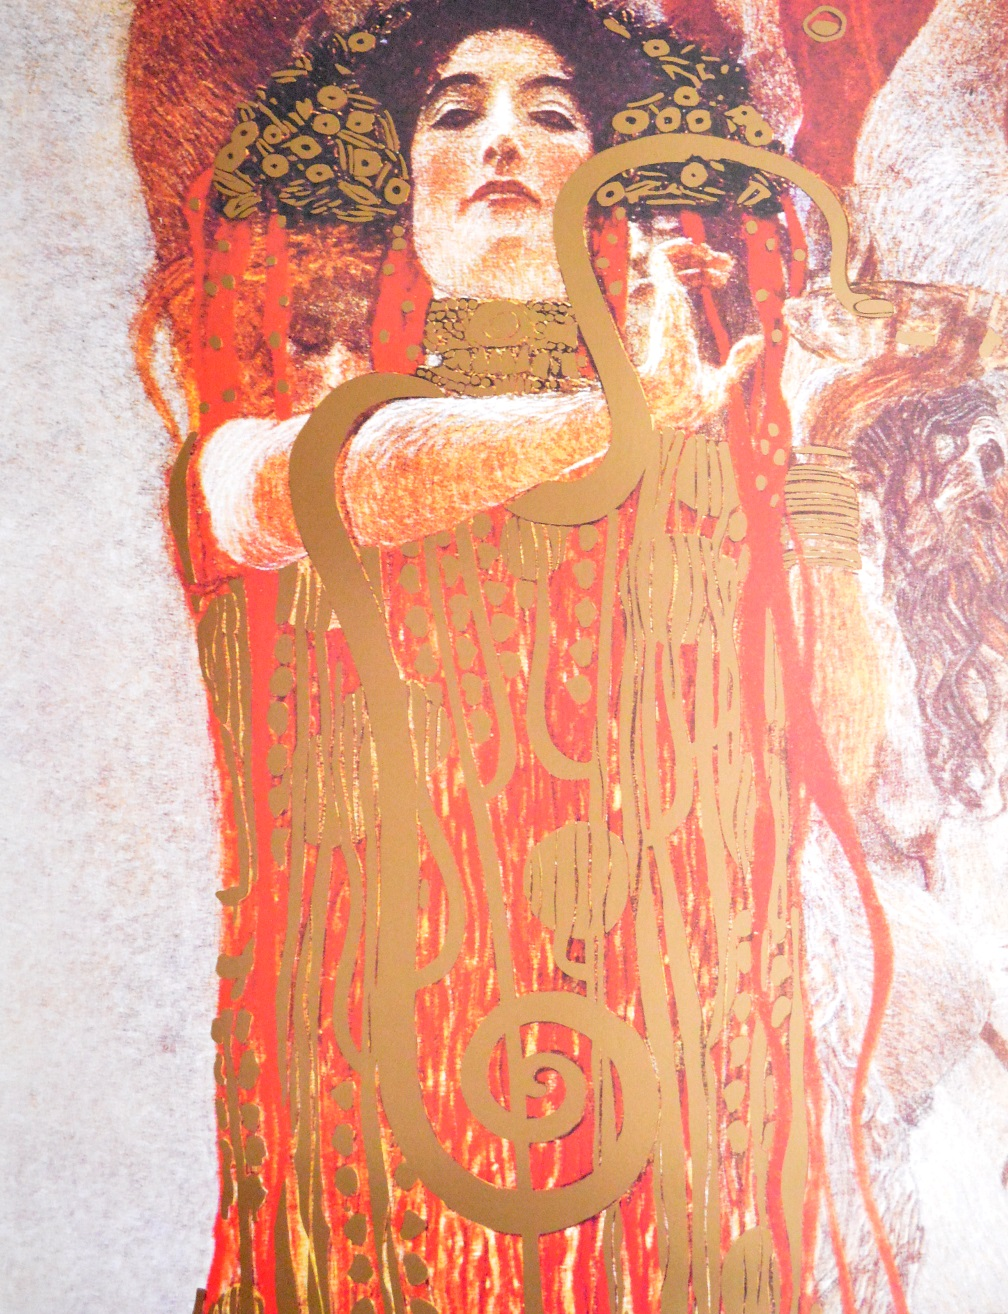 gustav klimt hygieia poster kunstdruck bild 80x60cm ebay. Black Bedroom Furniture Sets. Home Design Ideas